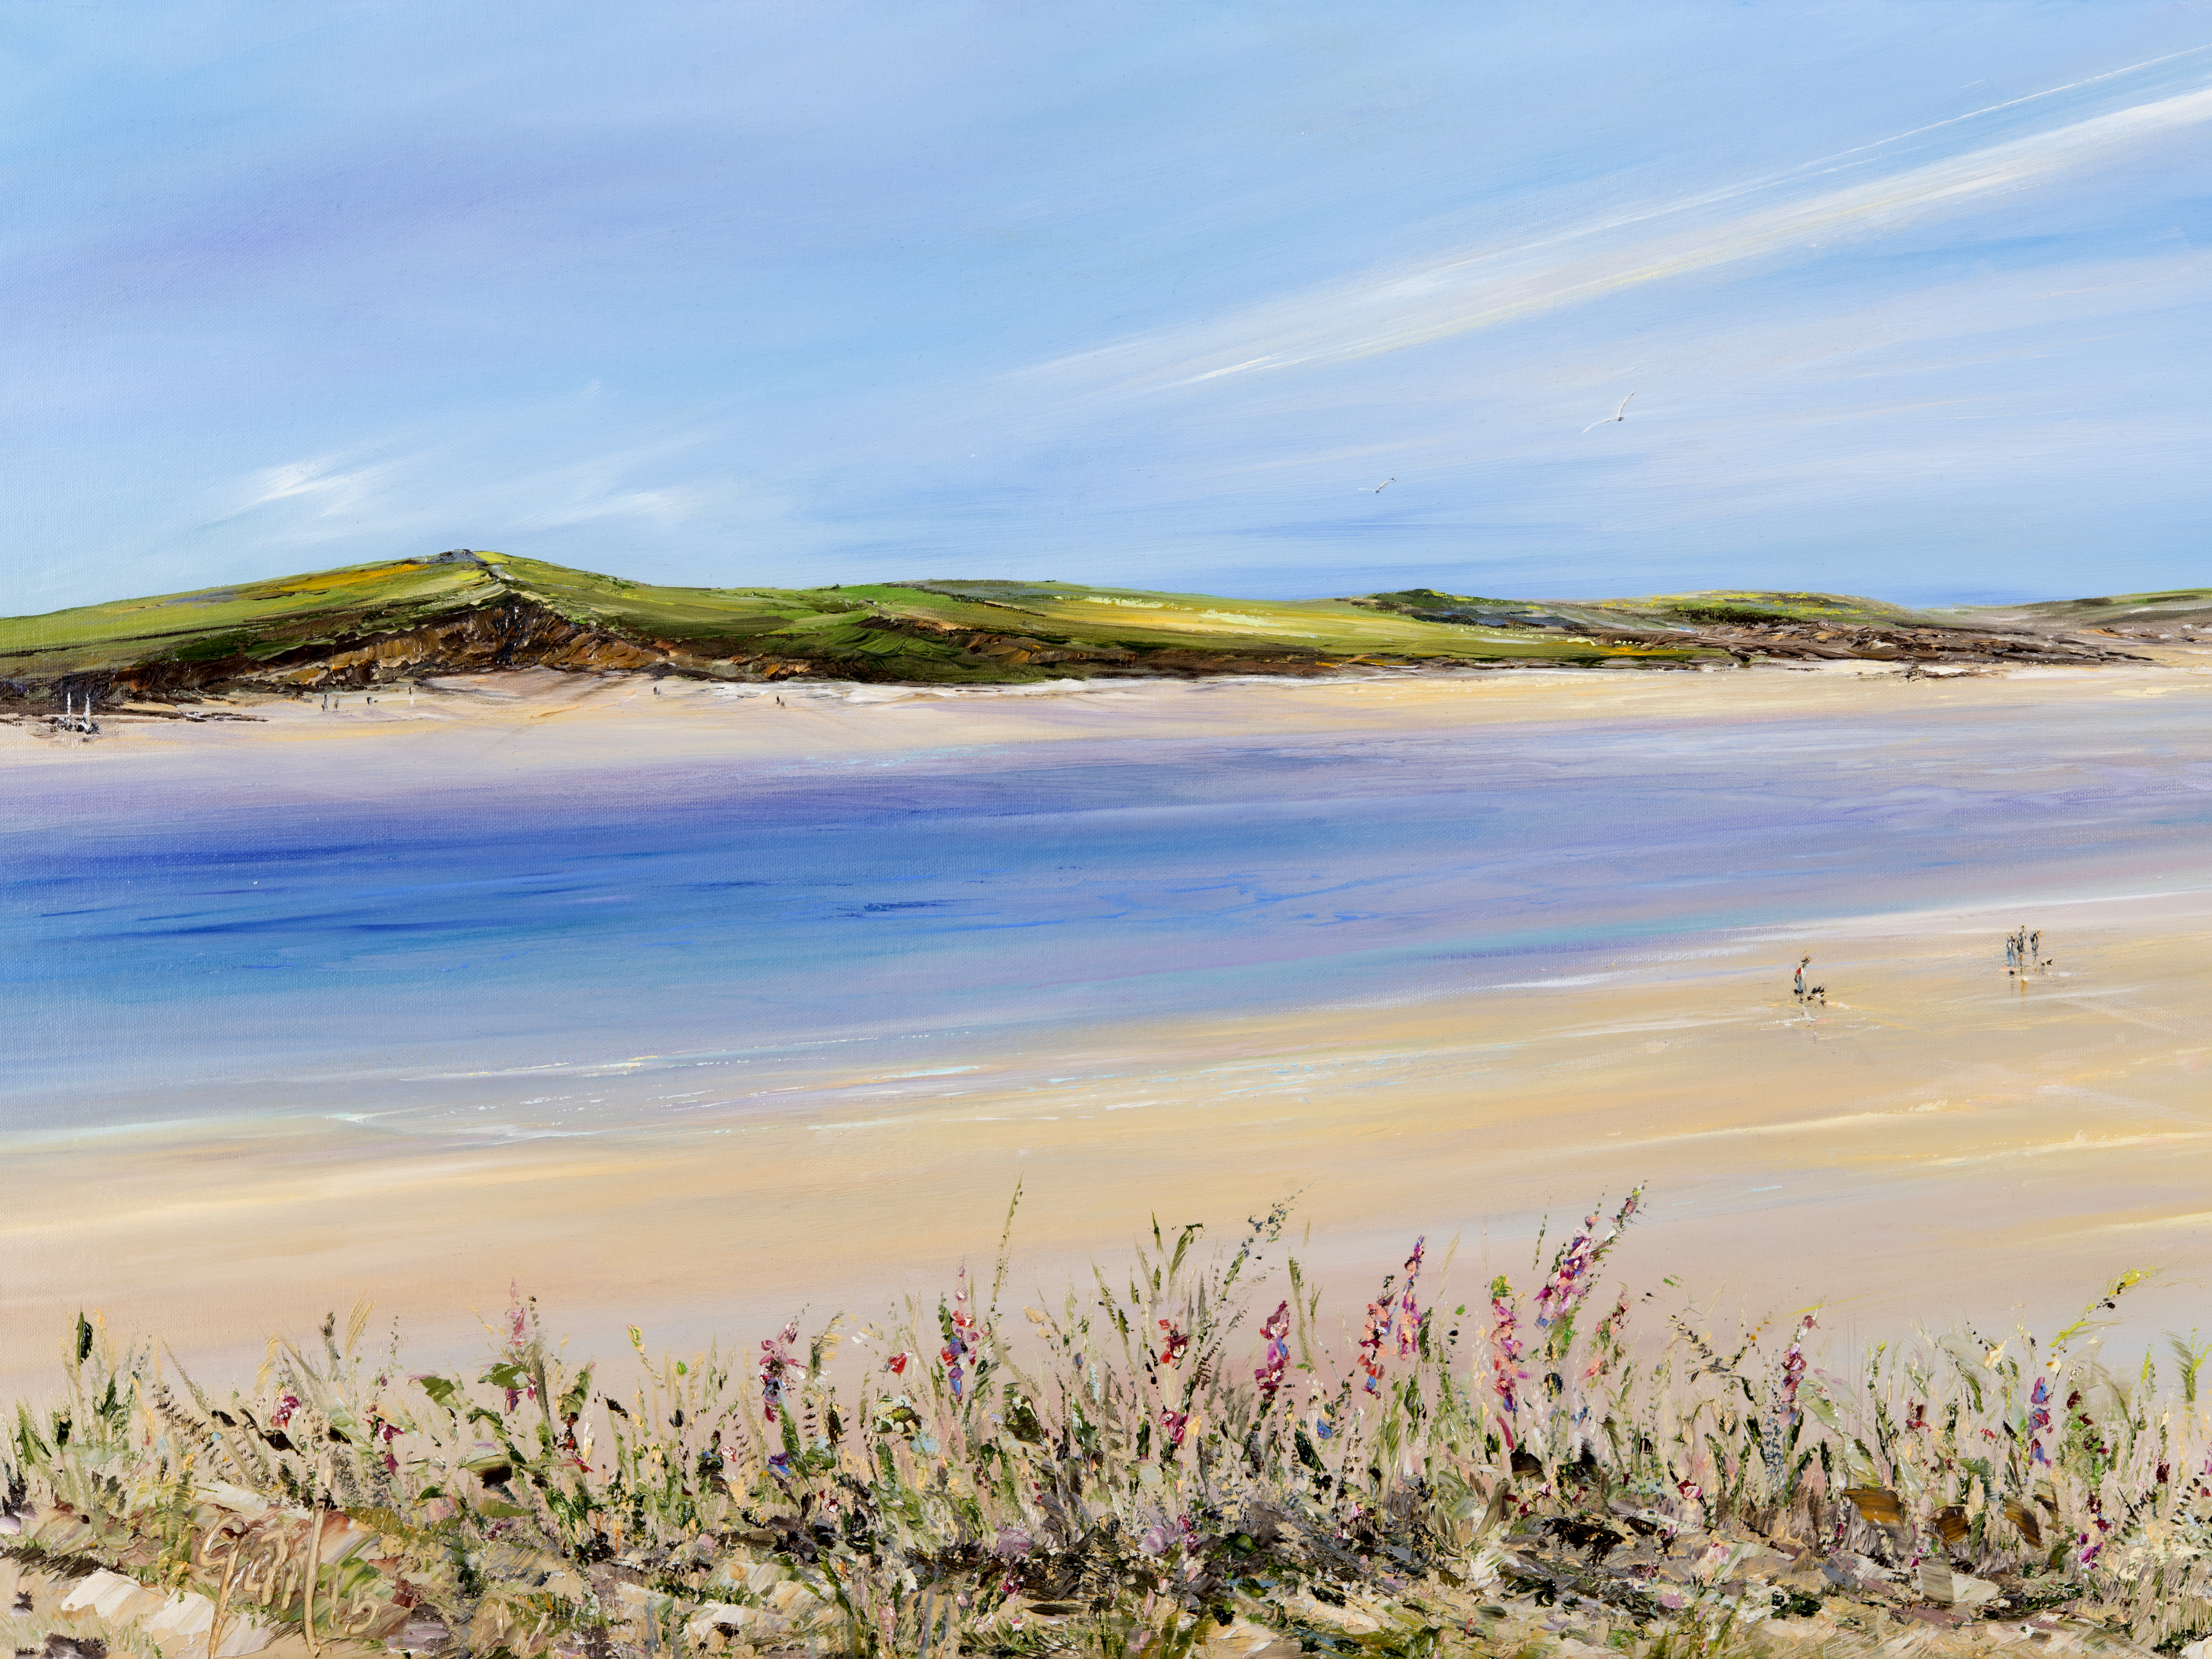 'Padstow Pinks II' - Camel Estuary, Cornwall Limited edition prints of this original painting by Gail Morris start from £30 - £110